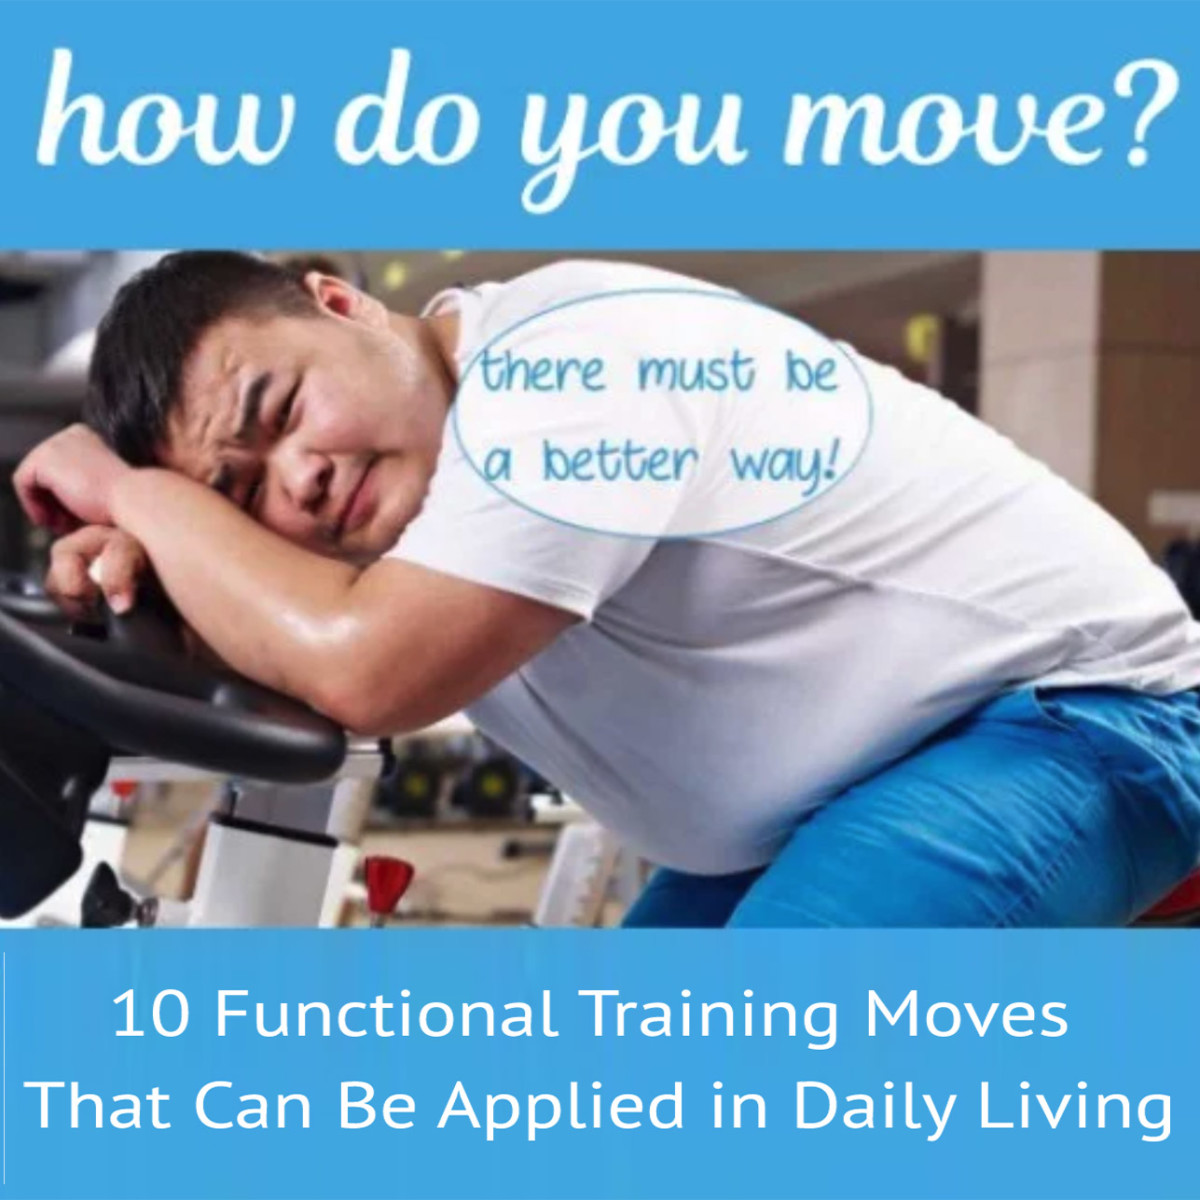 10 Functional Training Moves in Daily Living—Fitness Without Exercise